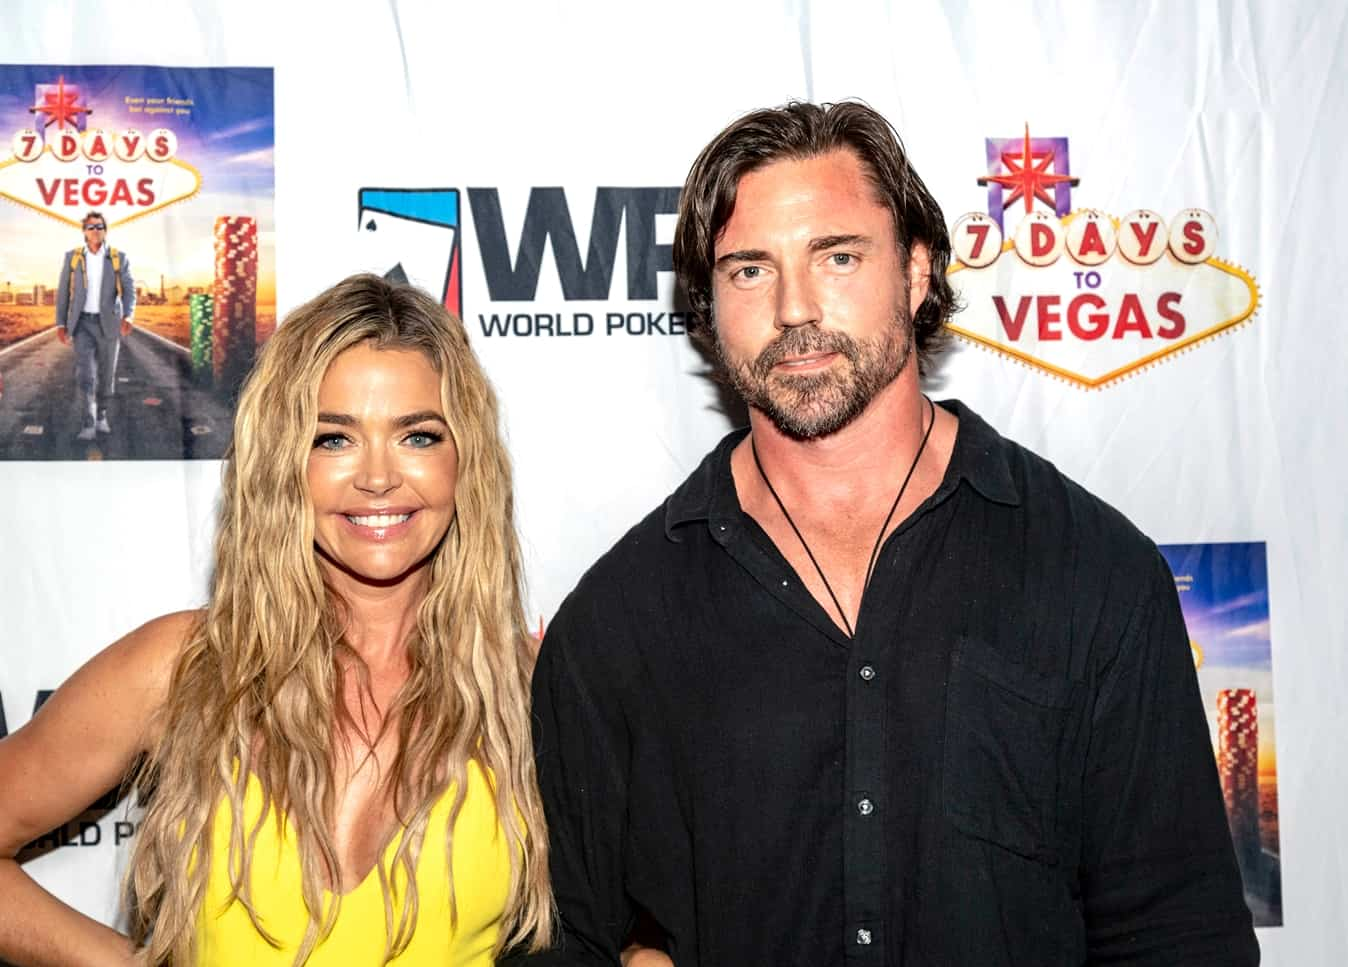 RHOBH's Denise Richards and Husband Aaron Phypers Accused of Trashing Rental Property in Lawsuit, See How They're Responding